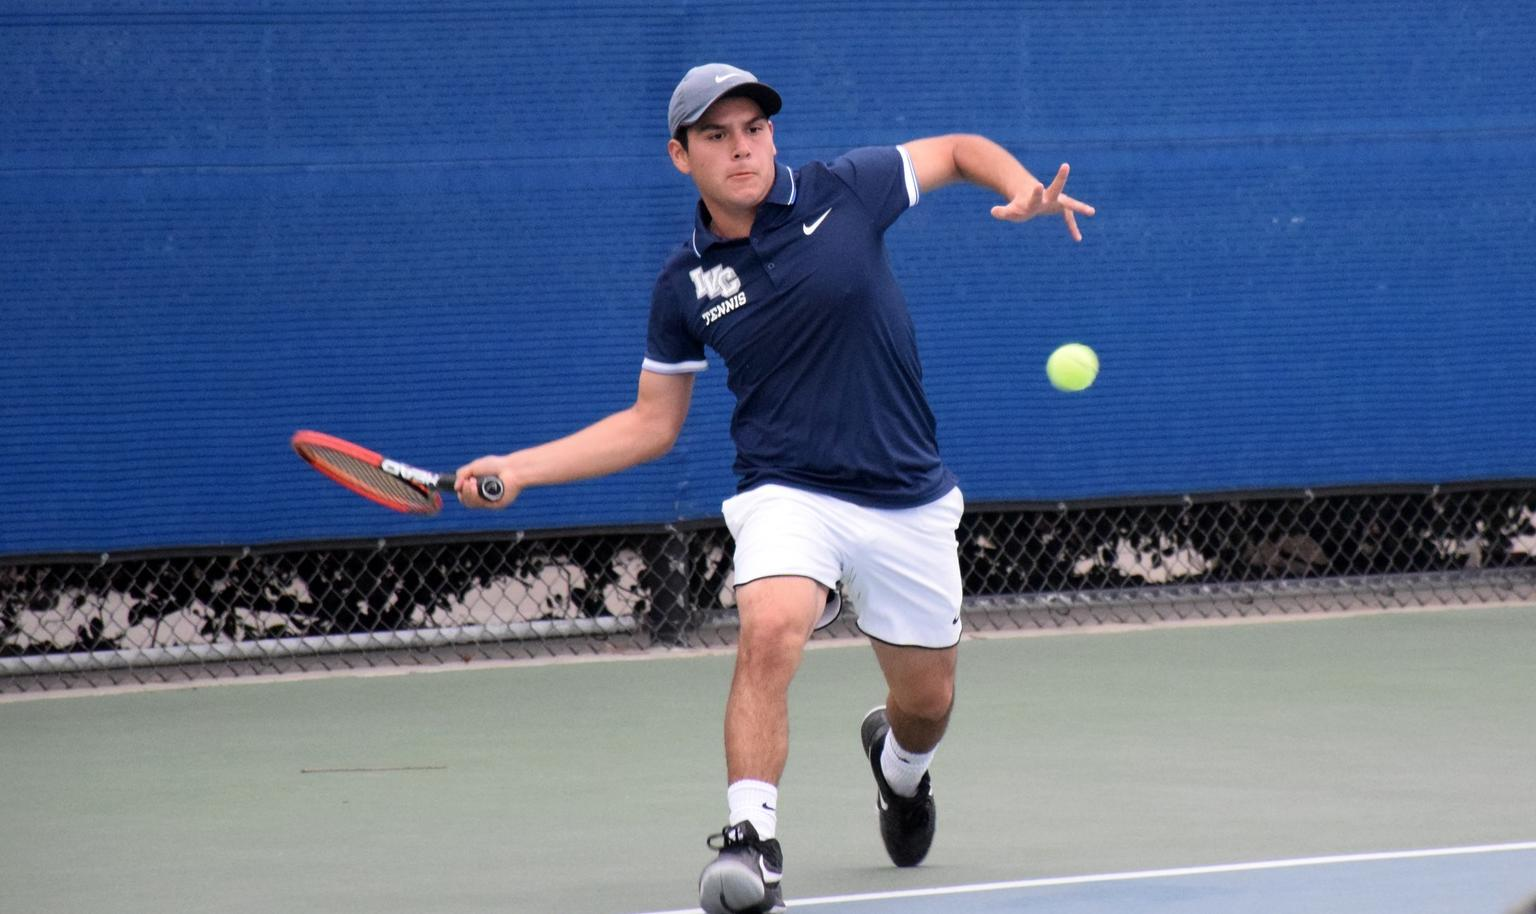 Men's tennis team opens conference play with easy win